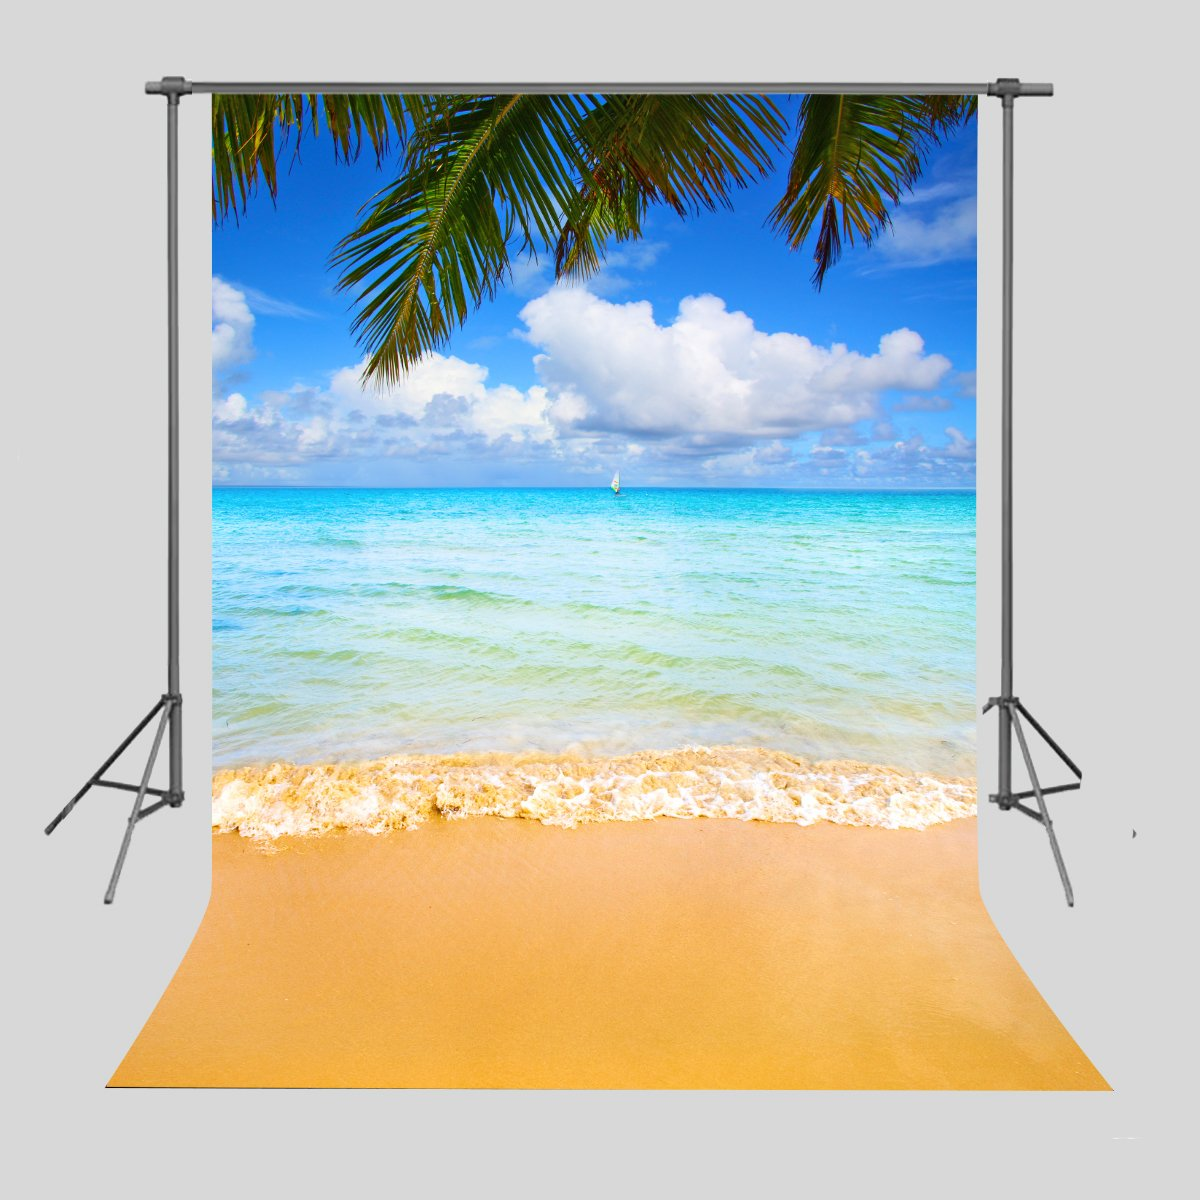 FUERMOR Background 5x7ft Blue Sky White Clouds Sea Beach Photography Backdrop Vacation Photo Props Room Mural HUIFU052 by FUERMOR